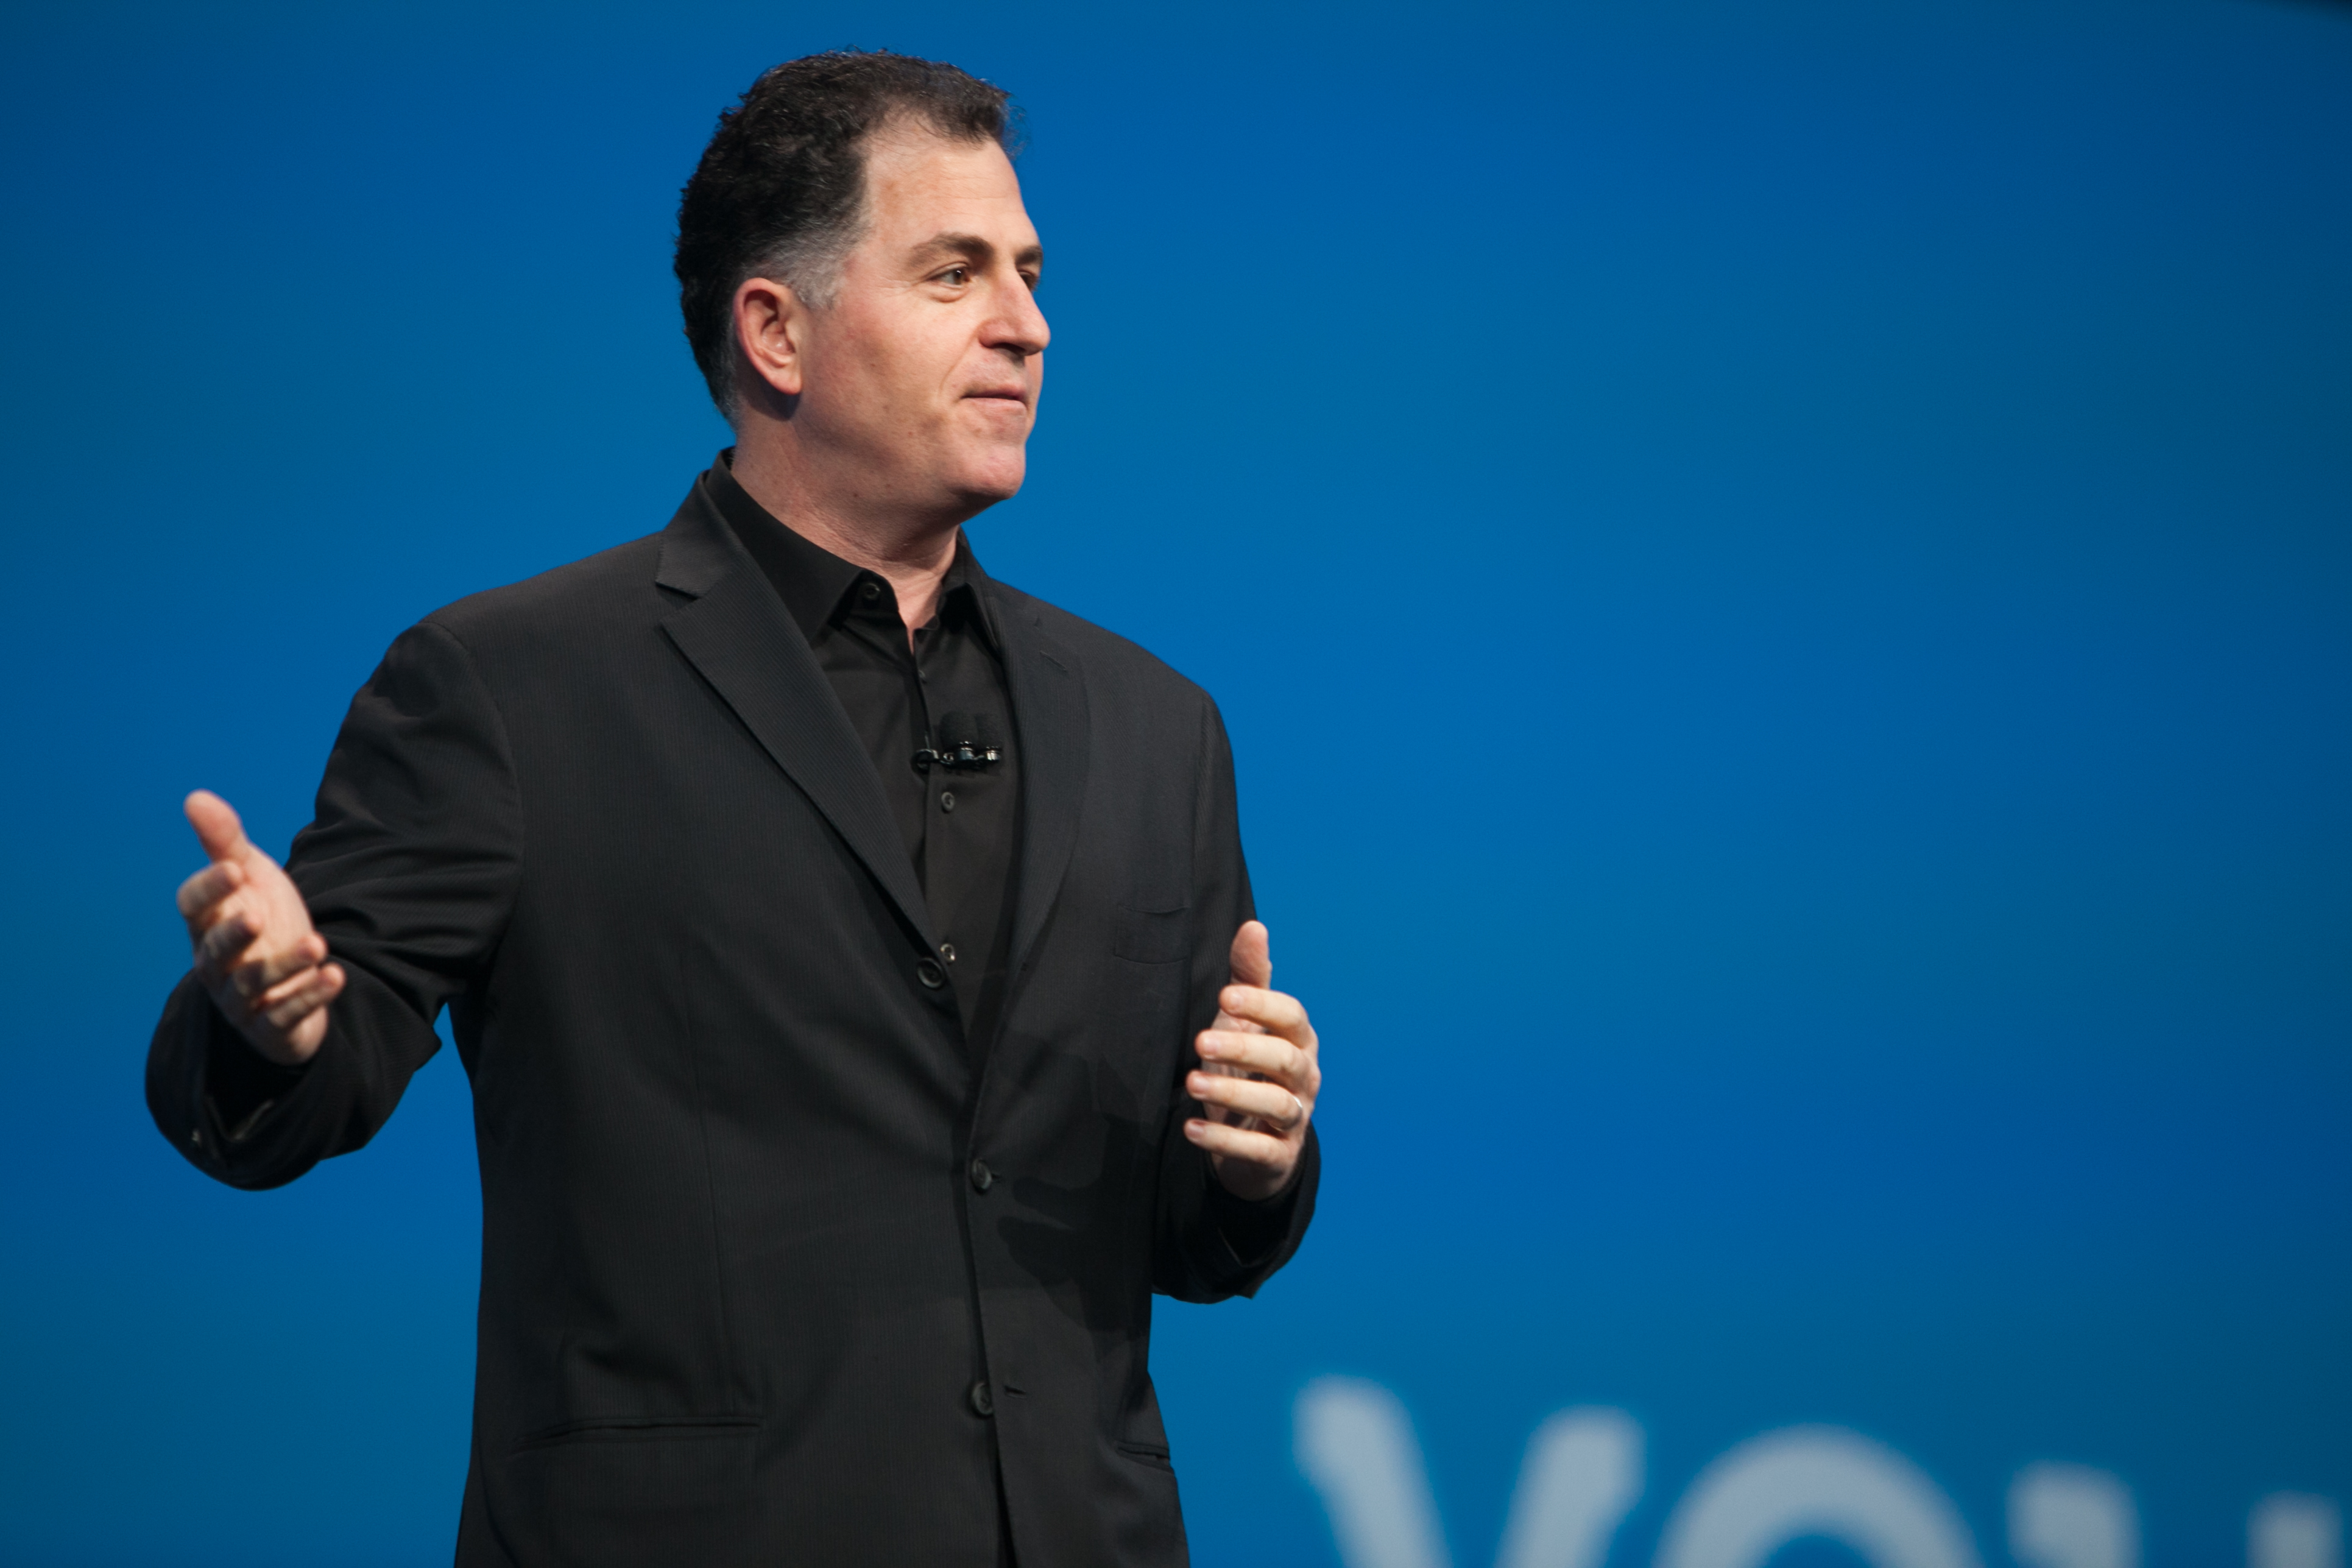 michael dell founder of the dell Dell inc said thursday that michael dell, the pc maker's founder, will relinquish the chief executive post in july but remain as company chairman.